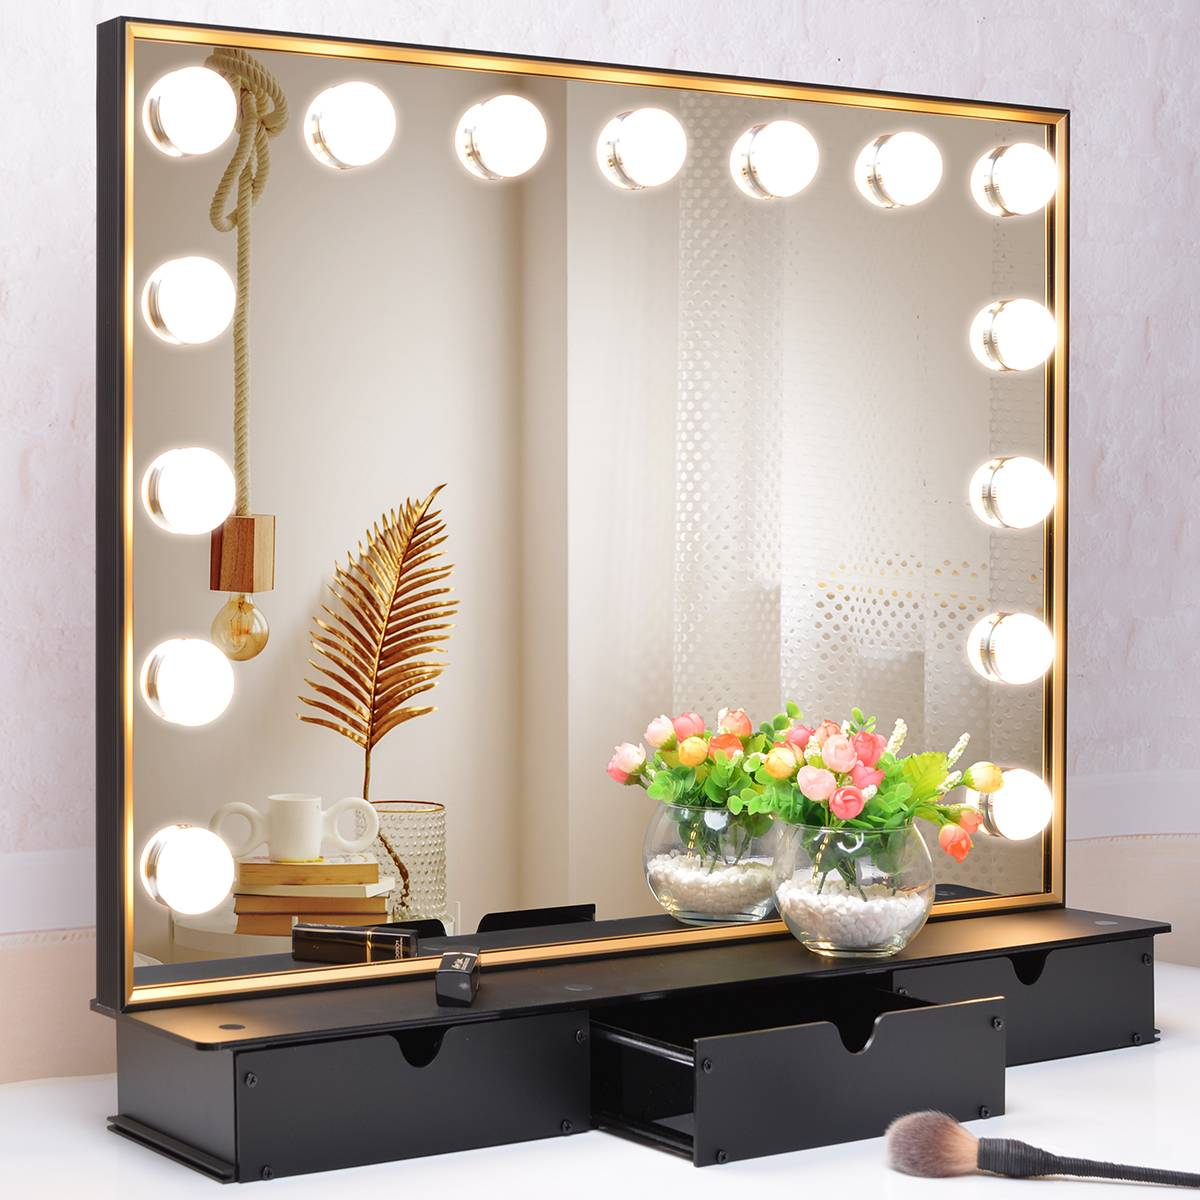 Dressing mirror with drawer is your best choice